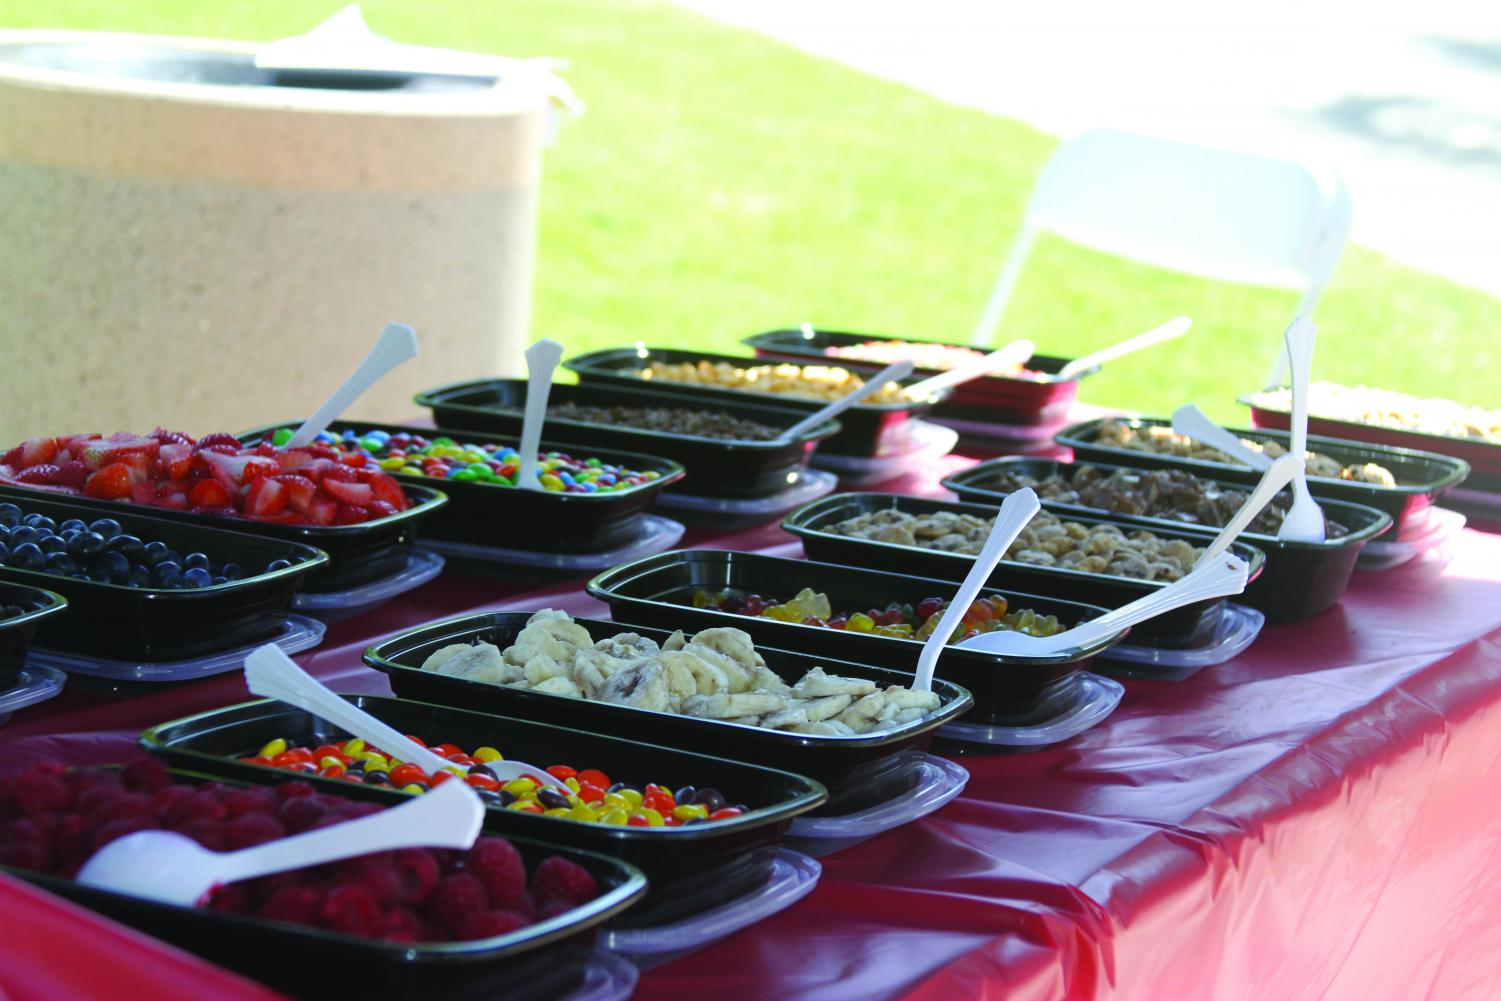 ASGCC offered deluxe toppings, including Fruity Pebbles and Oreos.